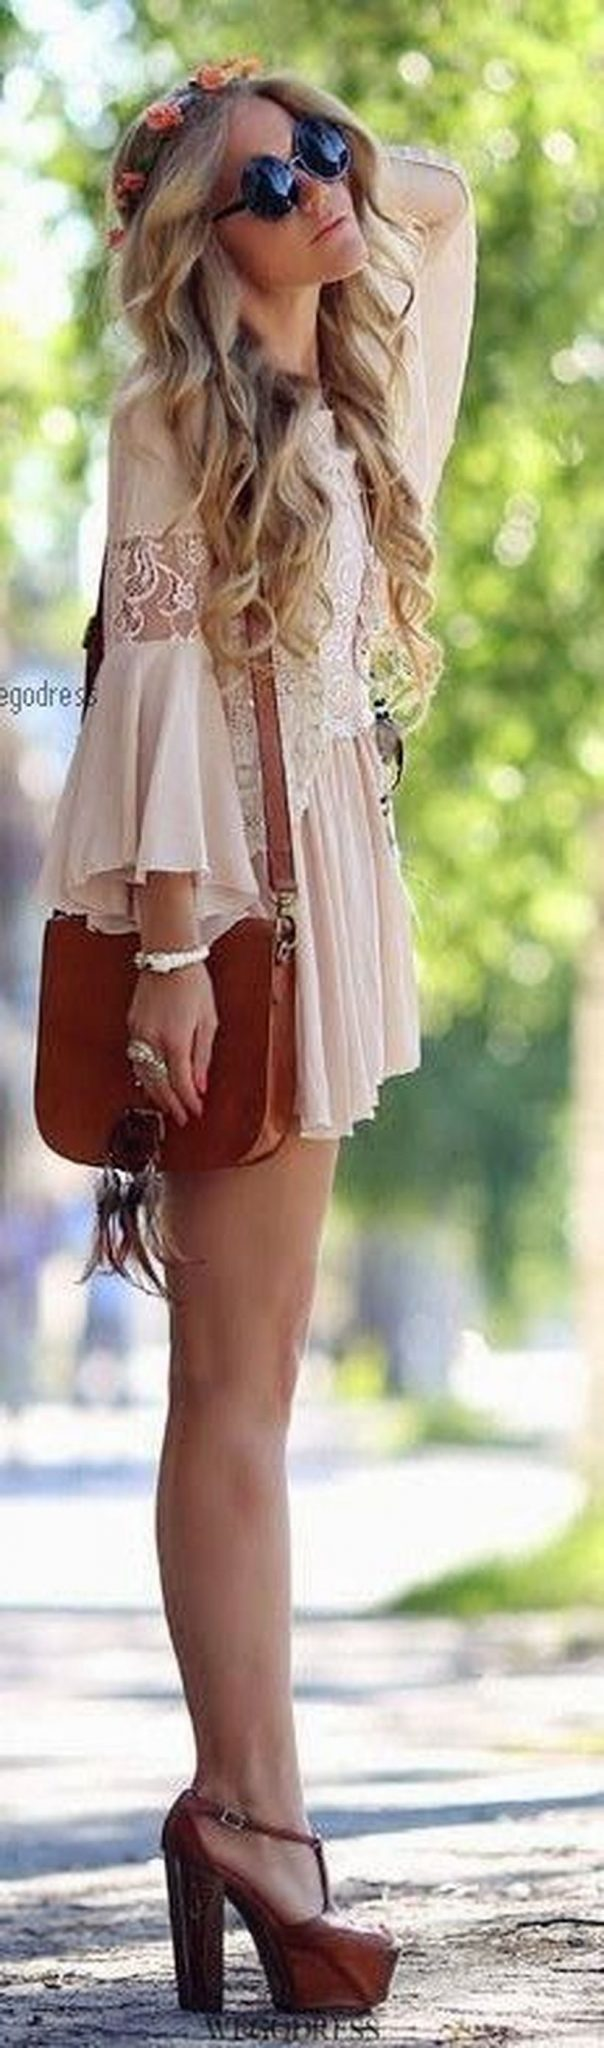 Stylish bohemian boho chic outfits style ideas 105 - Fashion Best